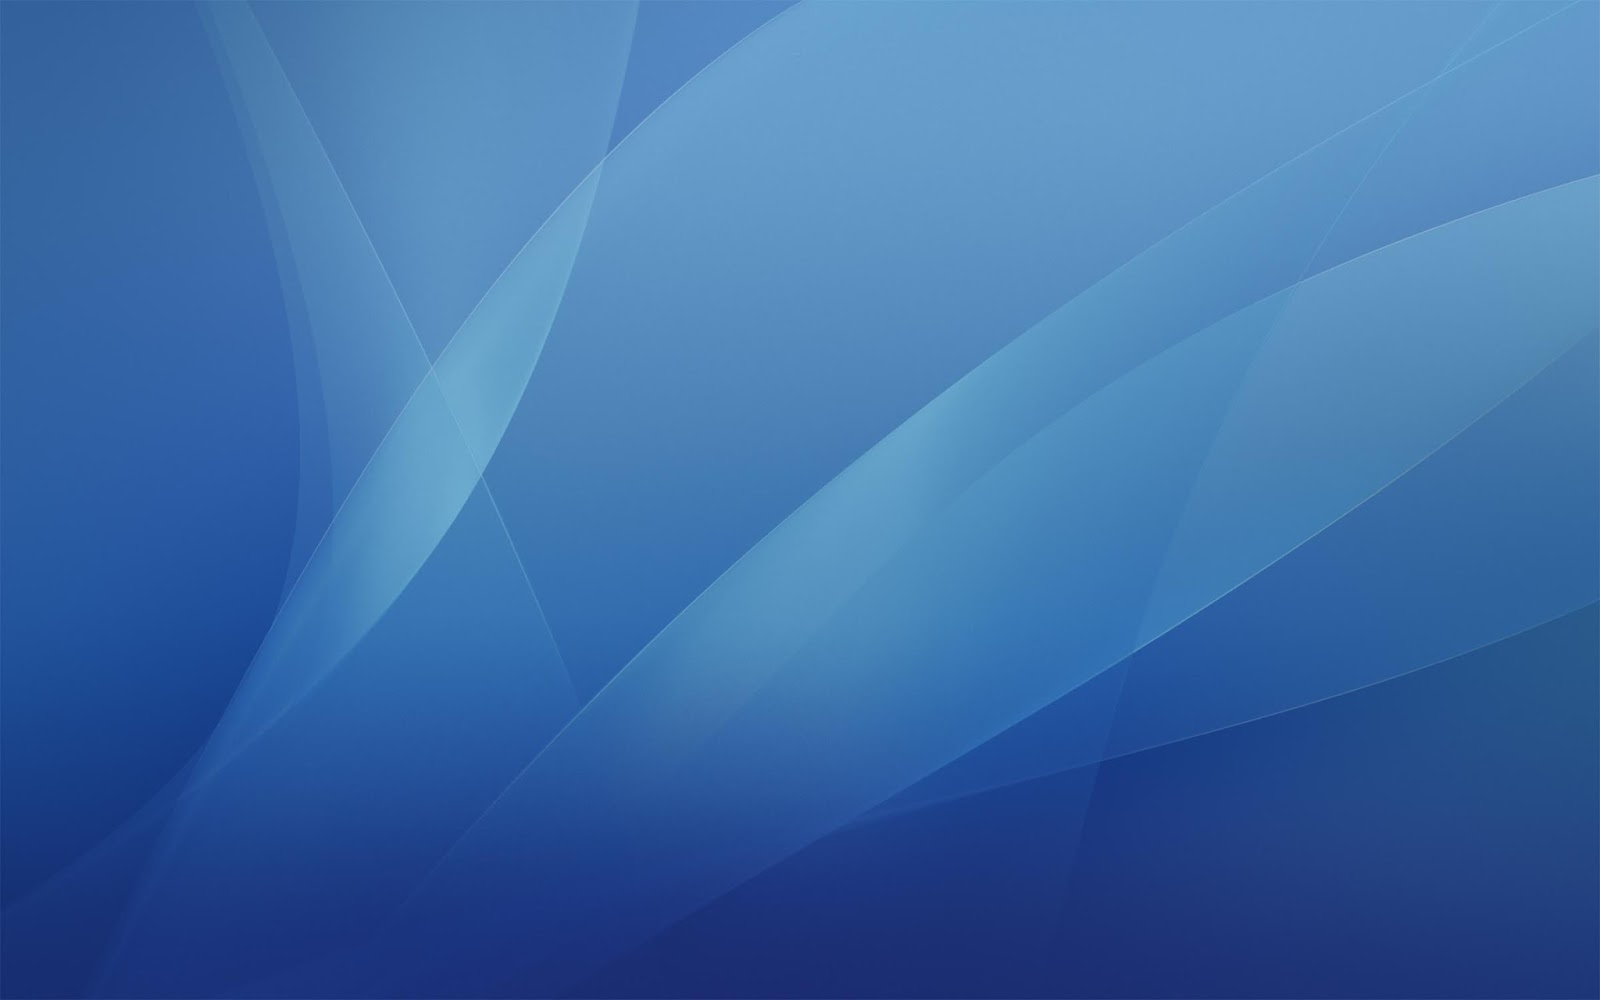 simple blue backgrounds hd - photo #22